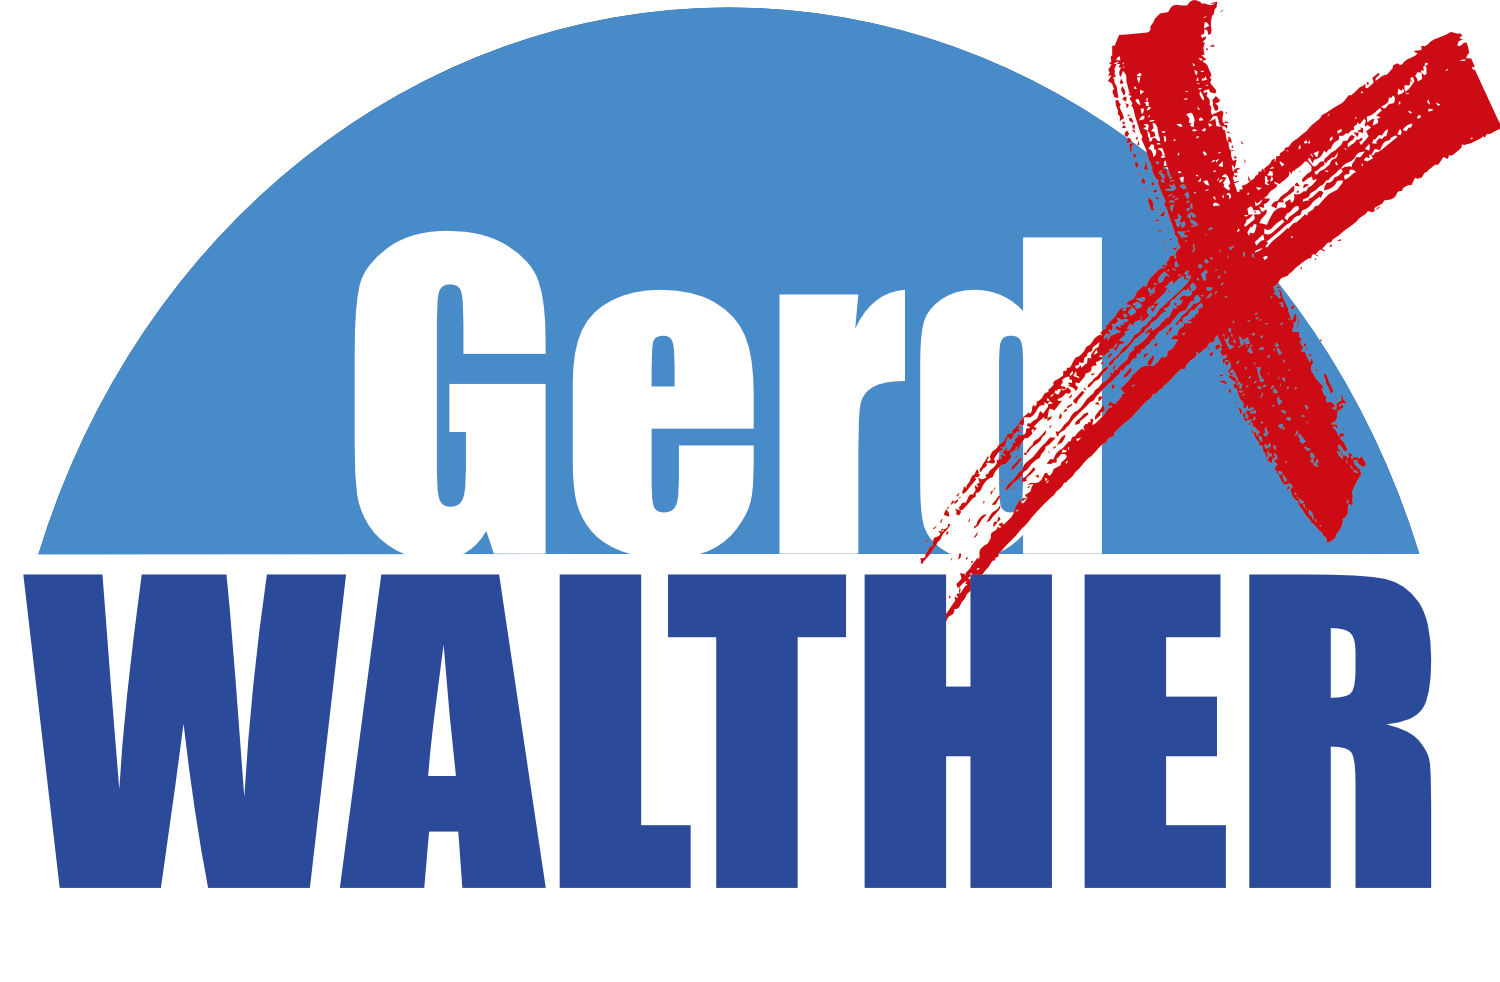 Gerd Walther